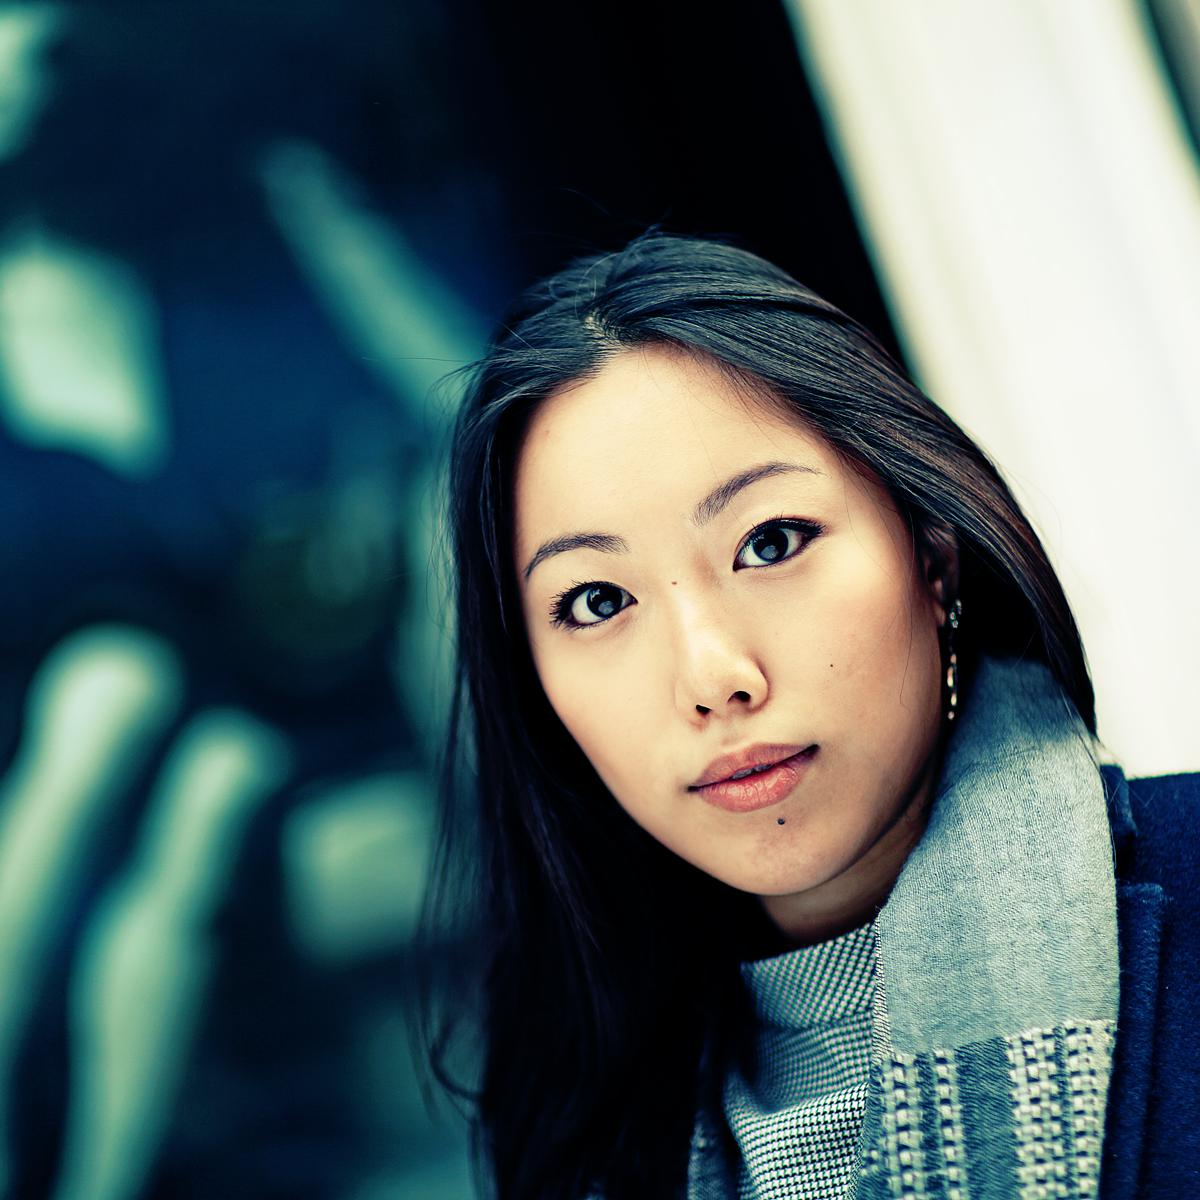 Professional Portrait of Selina Chan from London Studio of Art & Commerce by Julian Hanford